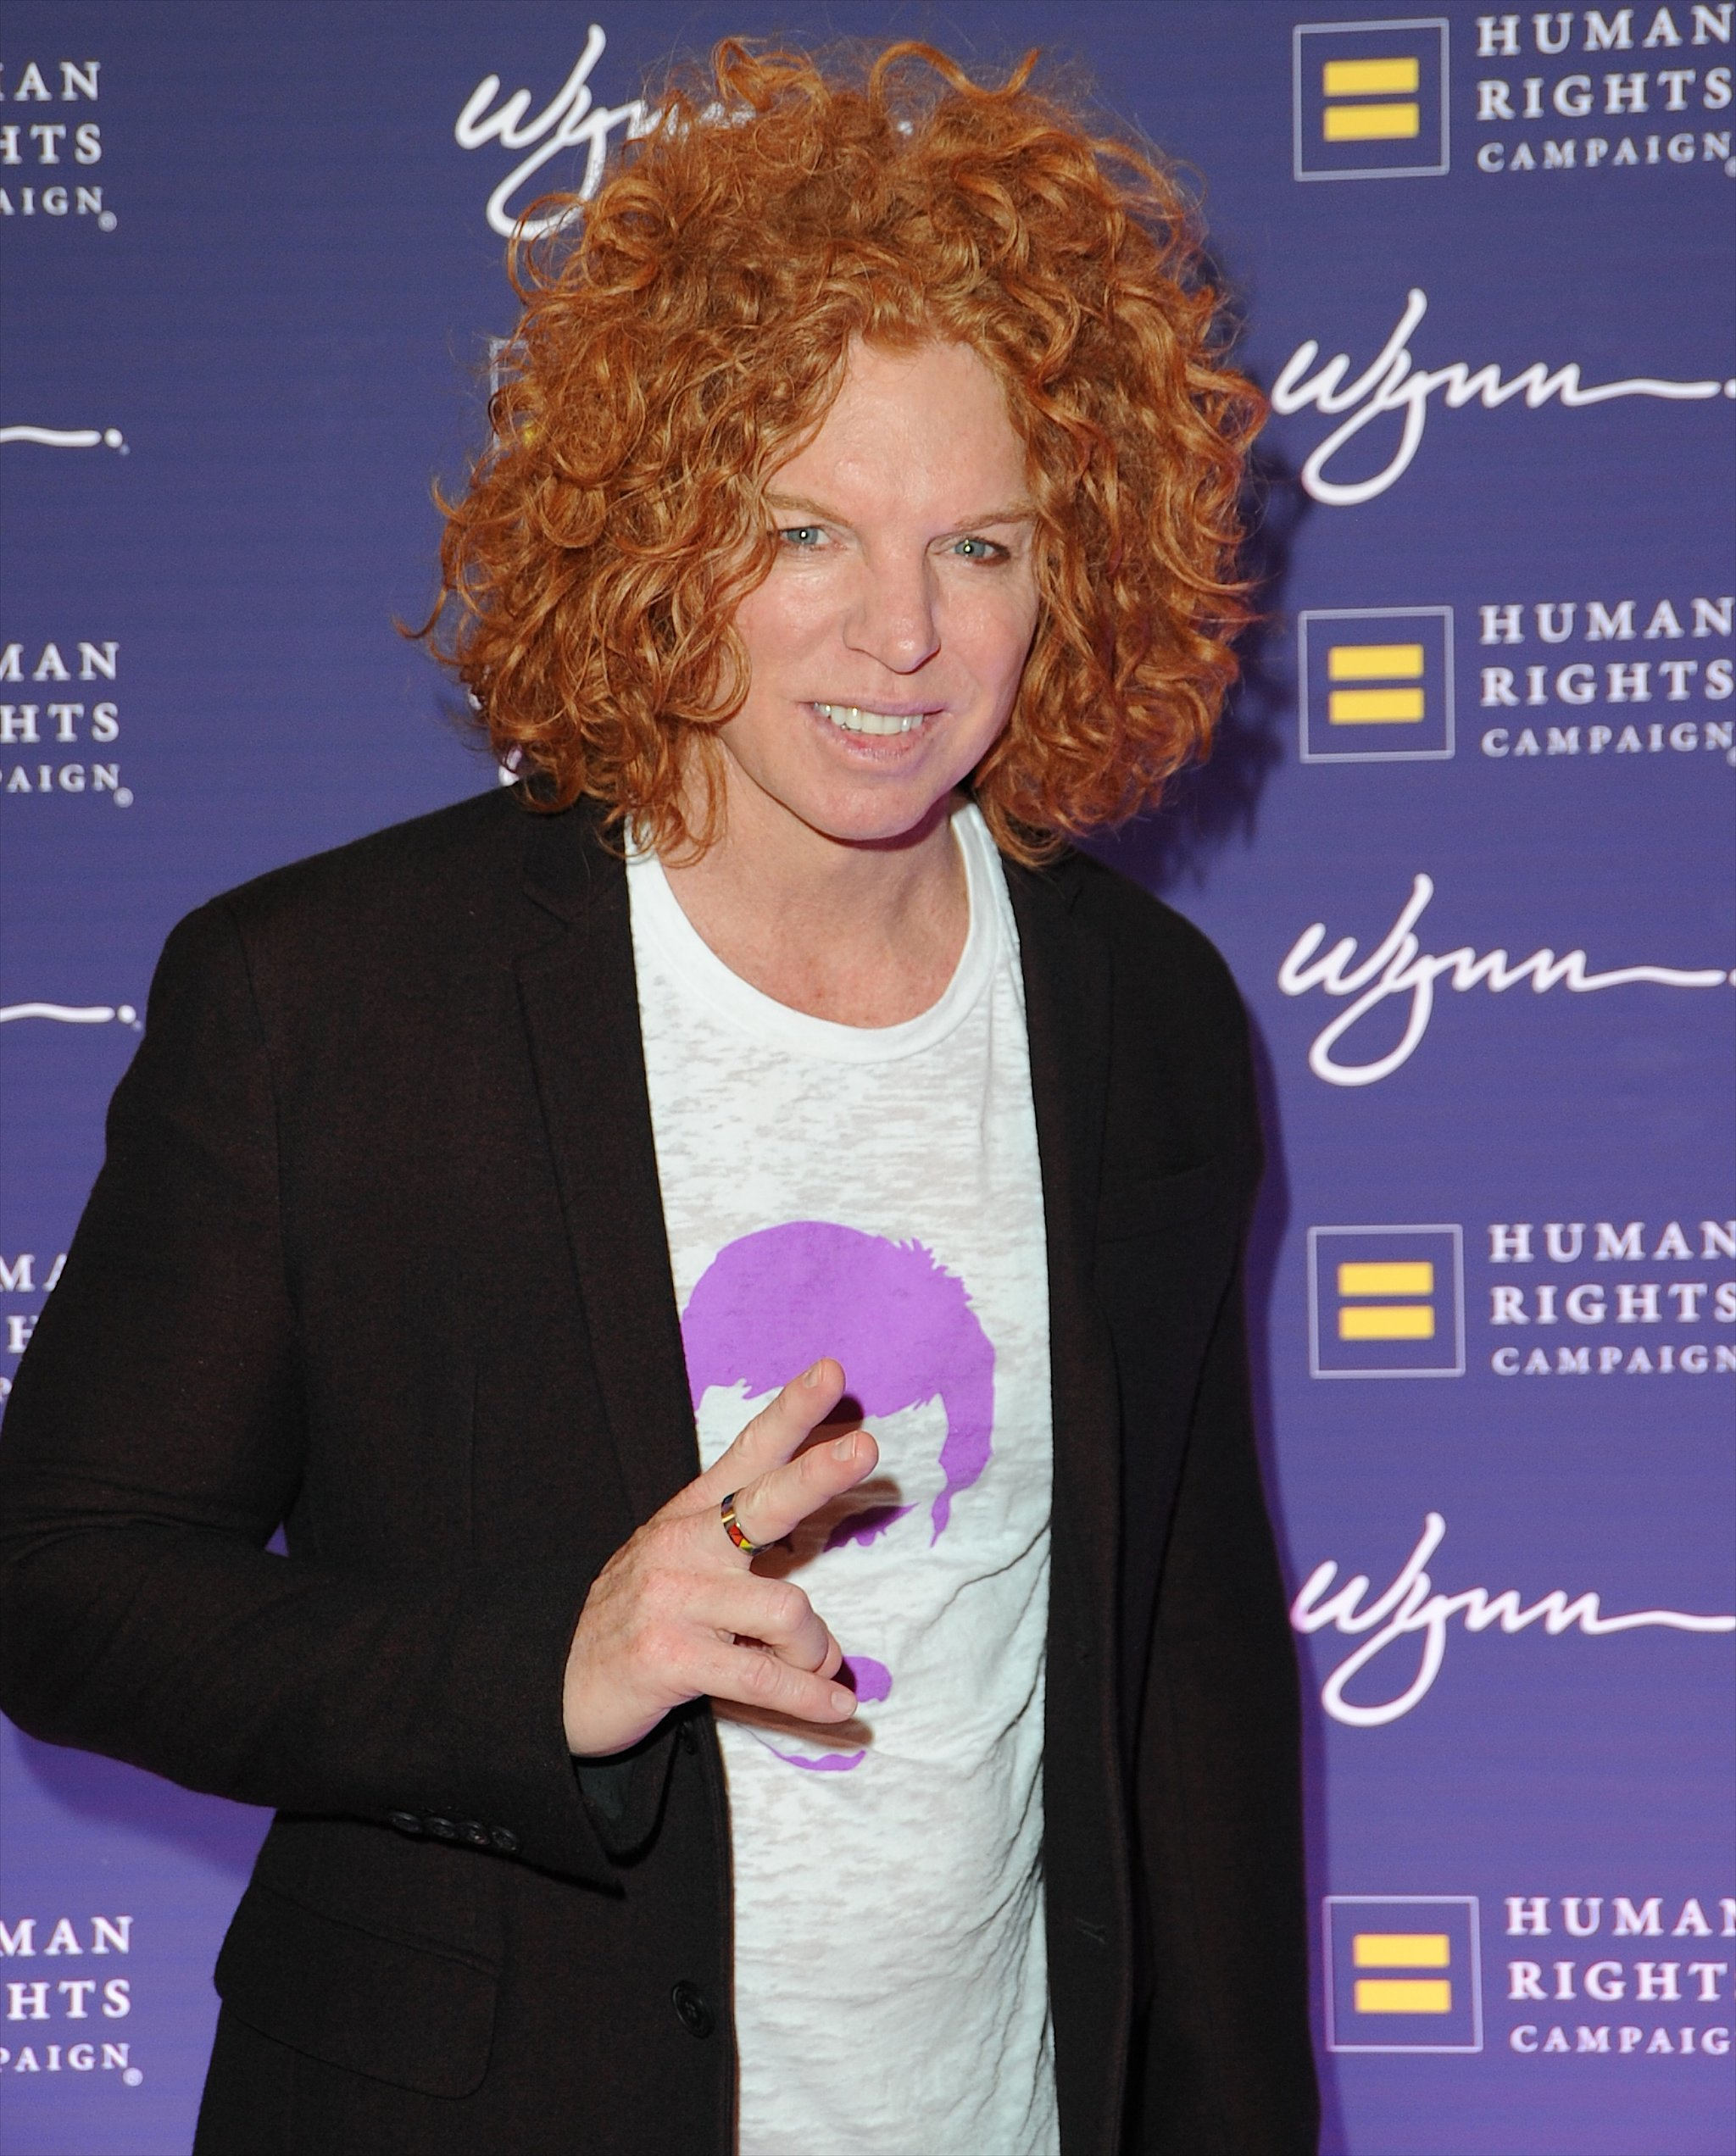 Carrot Top steroids and plastic surgery 01 – Celebrity ...  |Carrot Top 2015